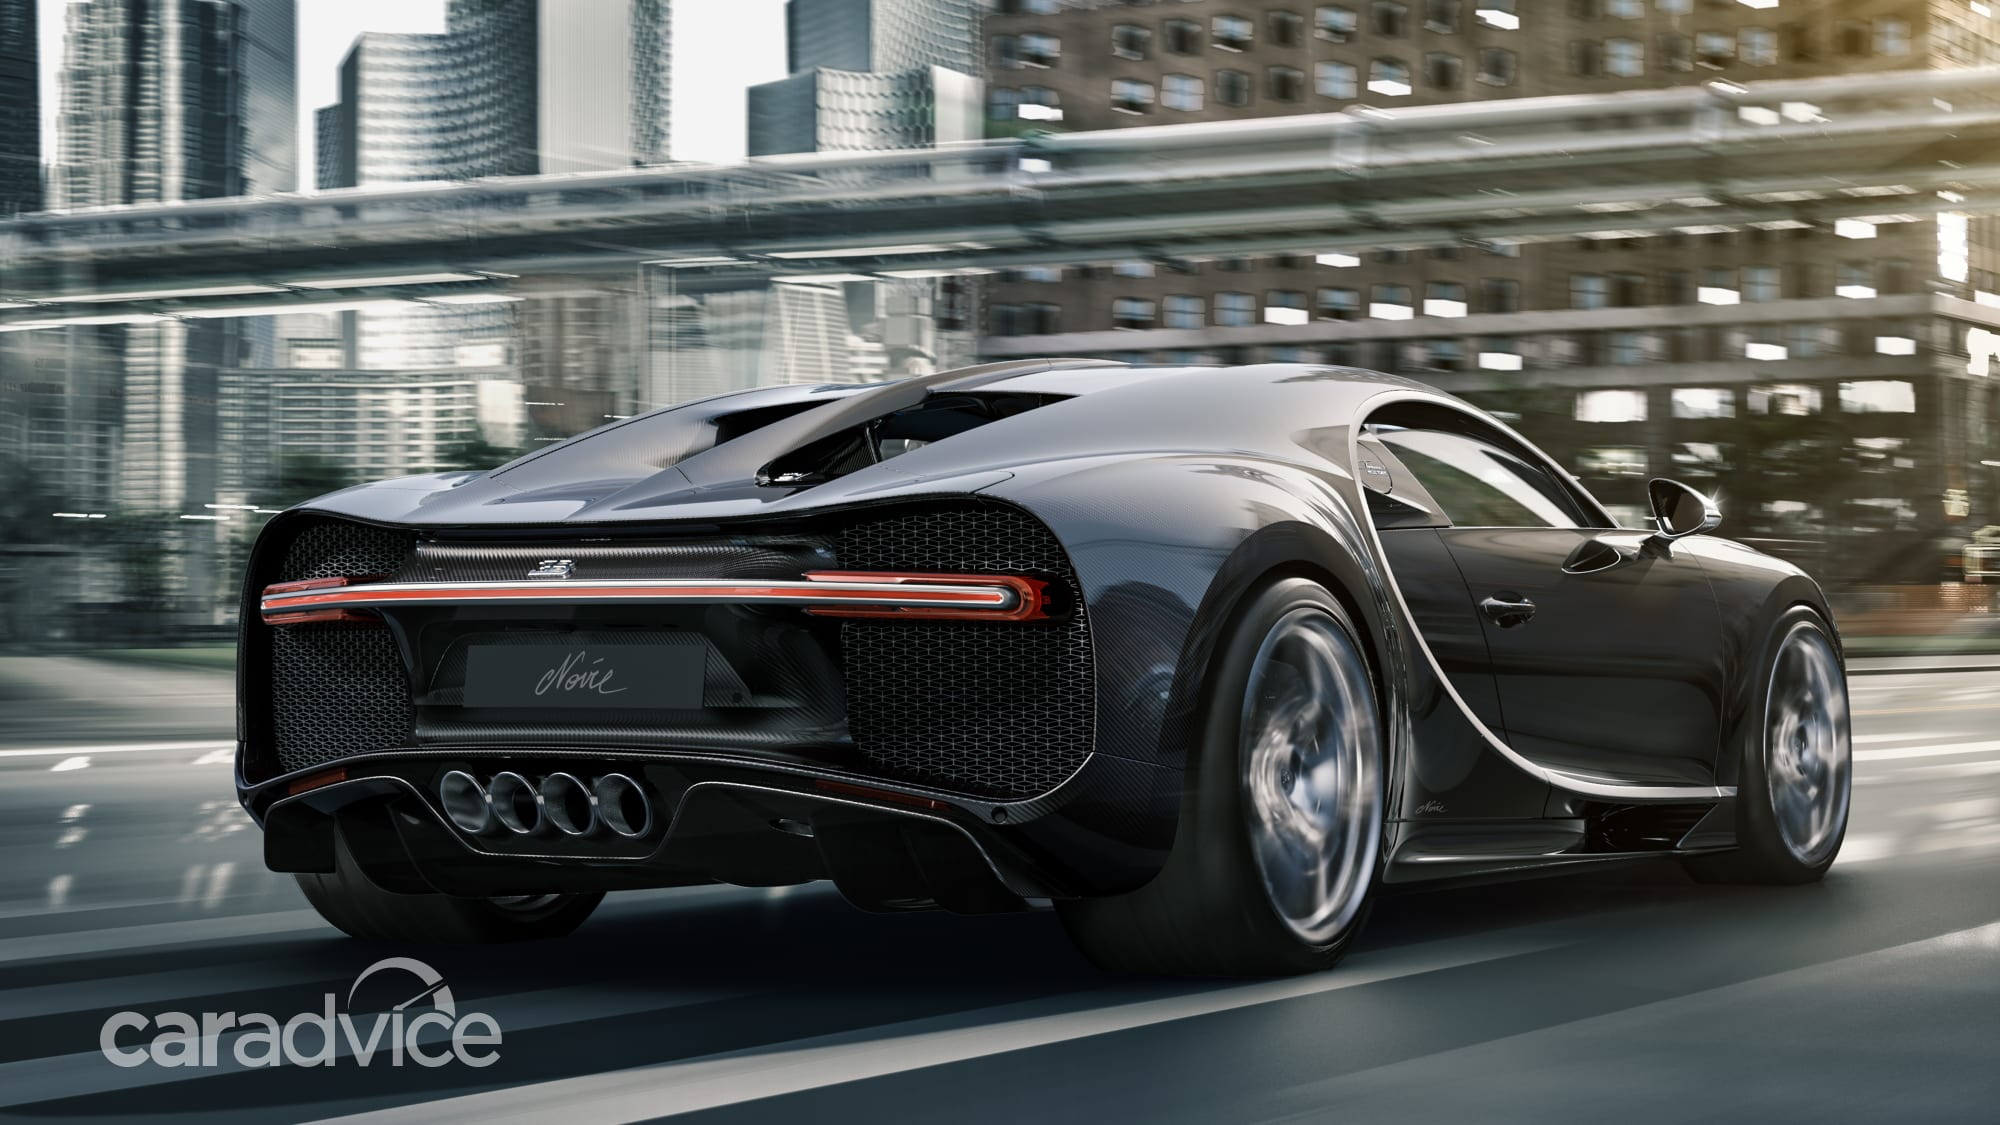 2020 Bugatti Chiron Noire: Limited-run hypercars revealed   CarAdvice